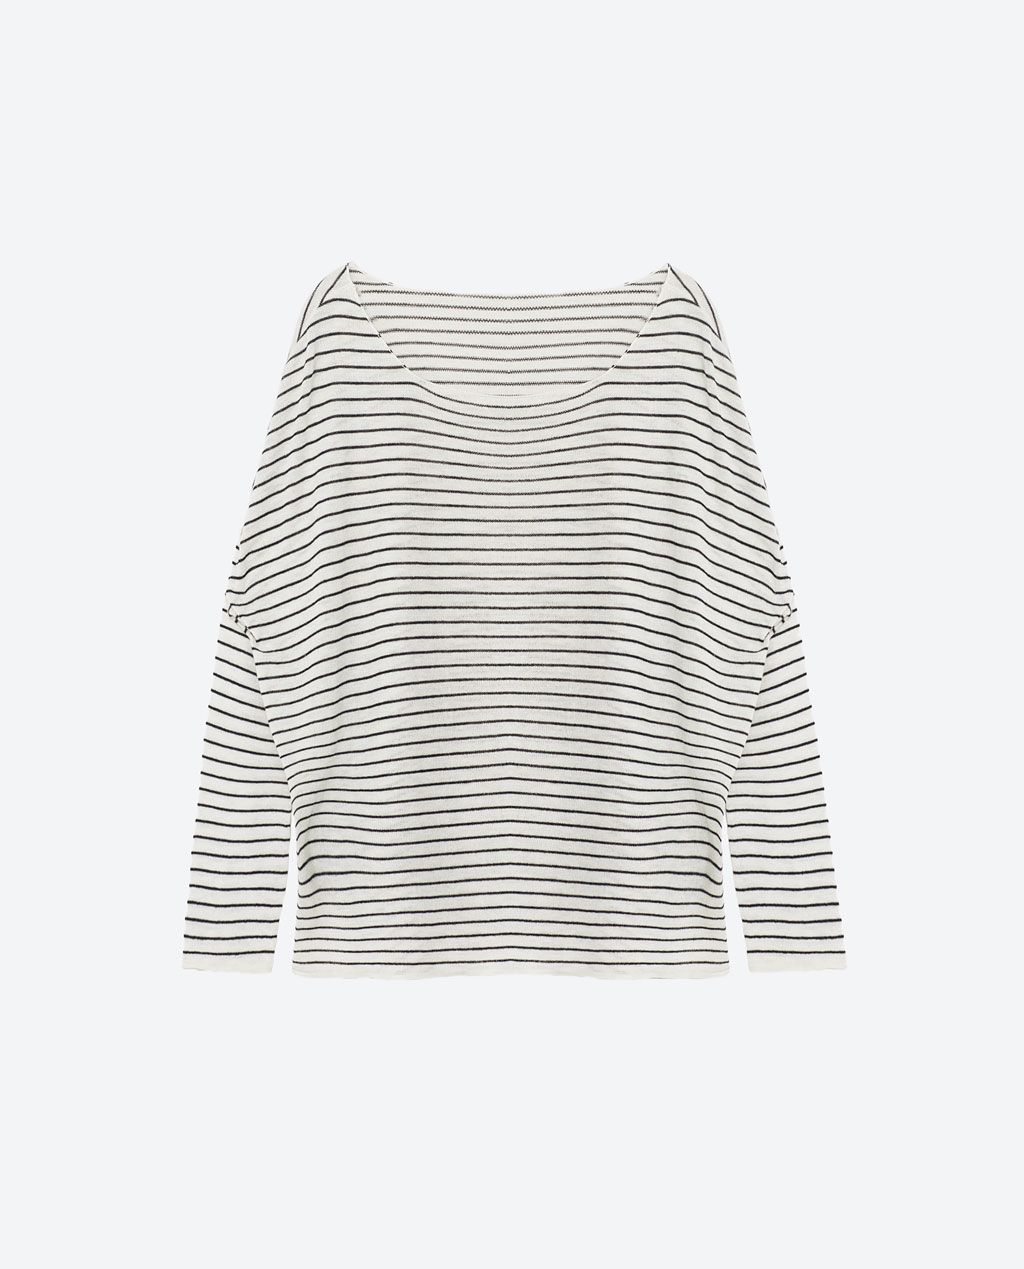 OVERSIZED SWEATER-KNITWEAR-WOMAN-COLLECTION AW16 | ZARA United States